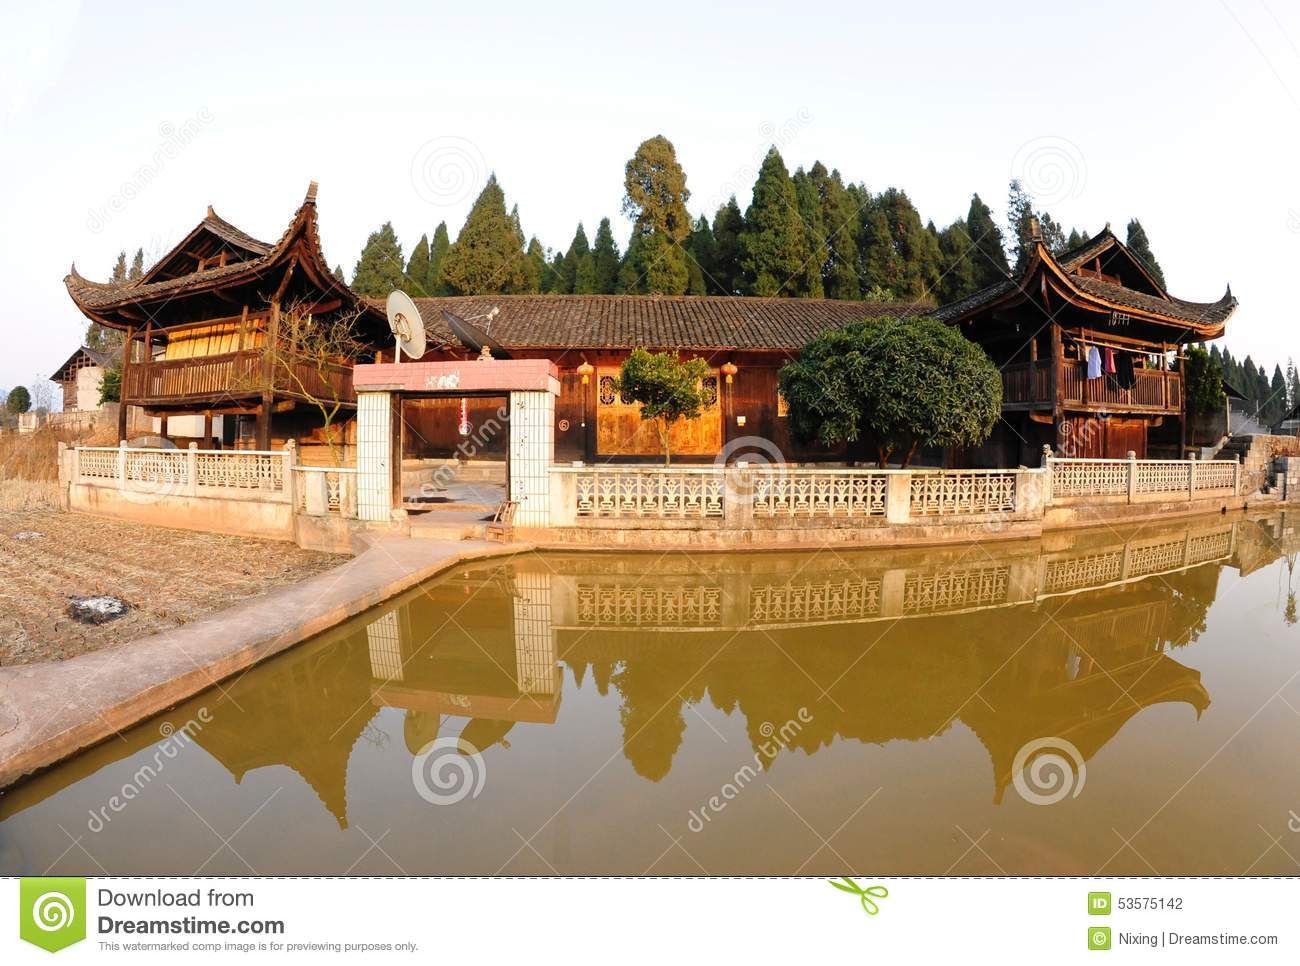 Ethnic Houses : Ethnic houses of TuJia in west Hunan province, China. .